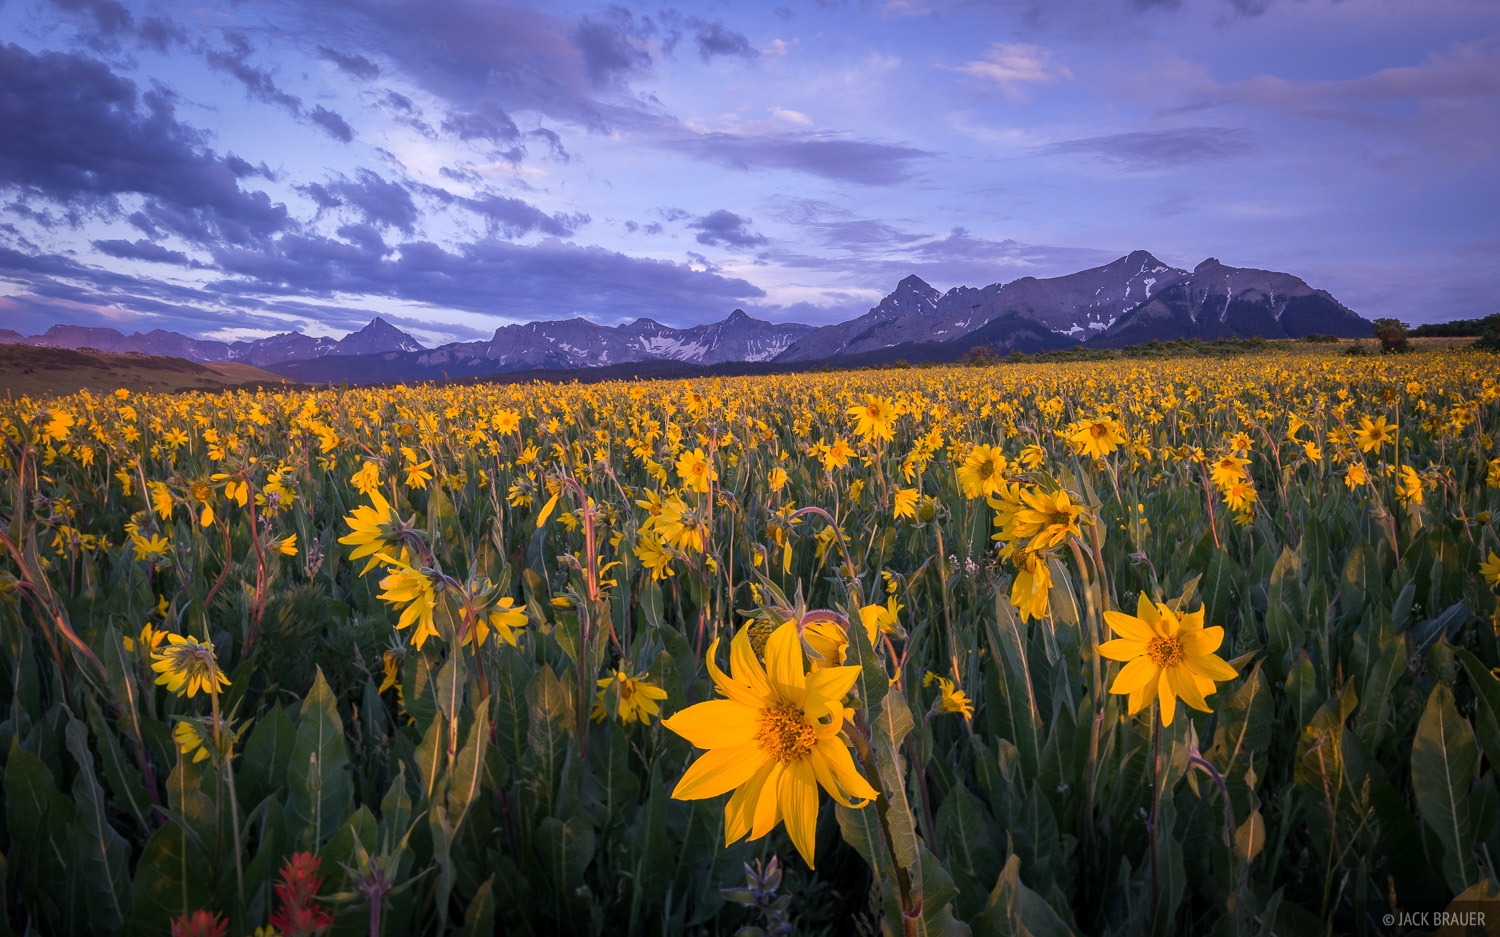 Colorado,San Juan Mountains,Sneffels Range,wildflowers, sunset, July, photo